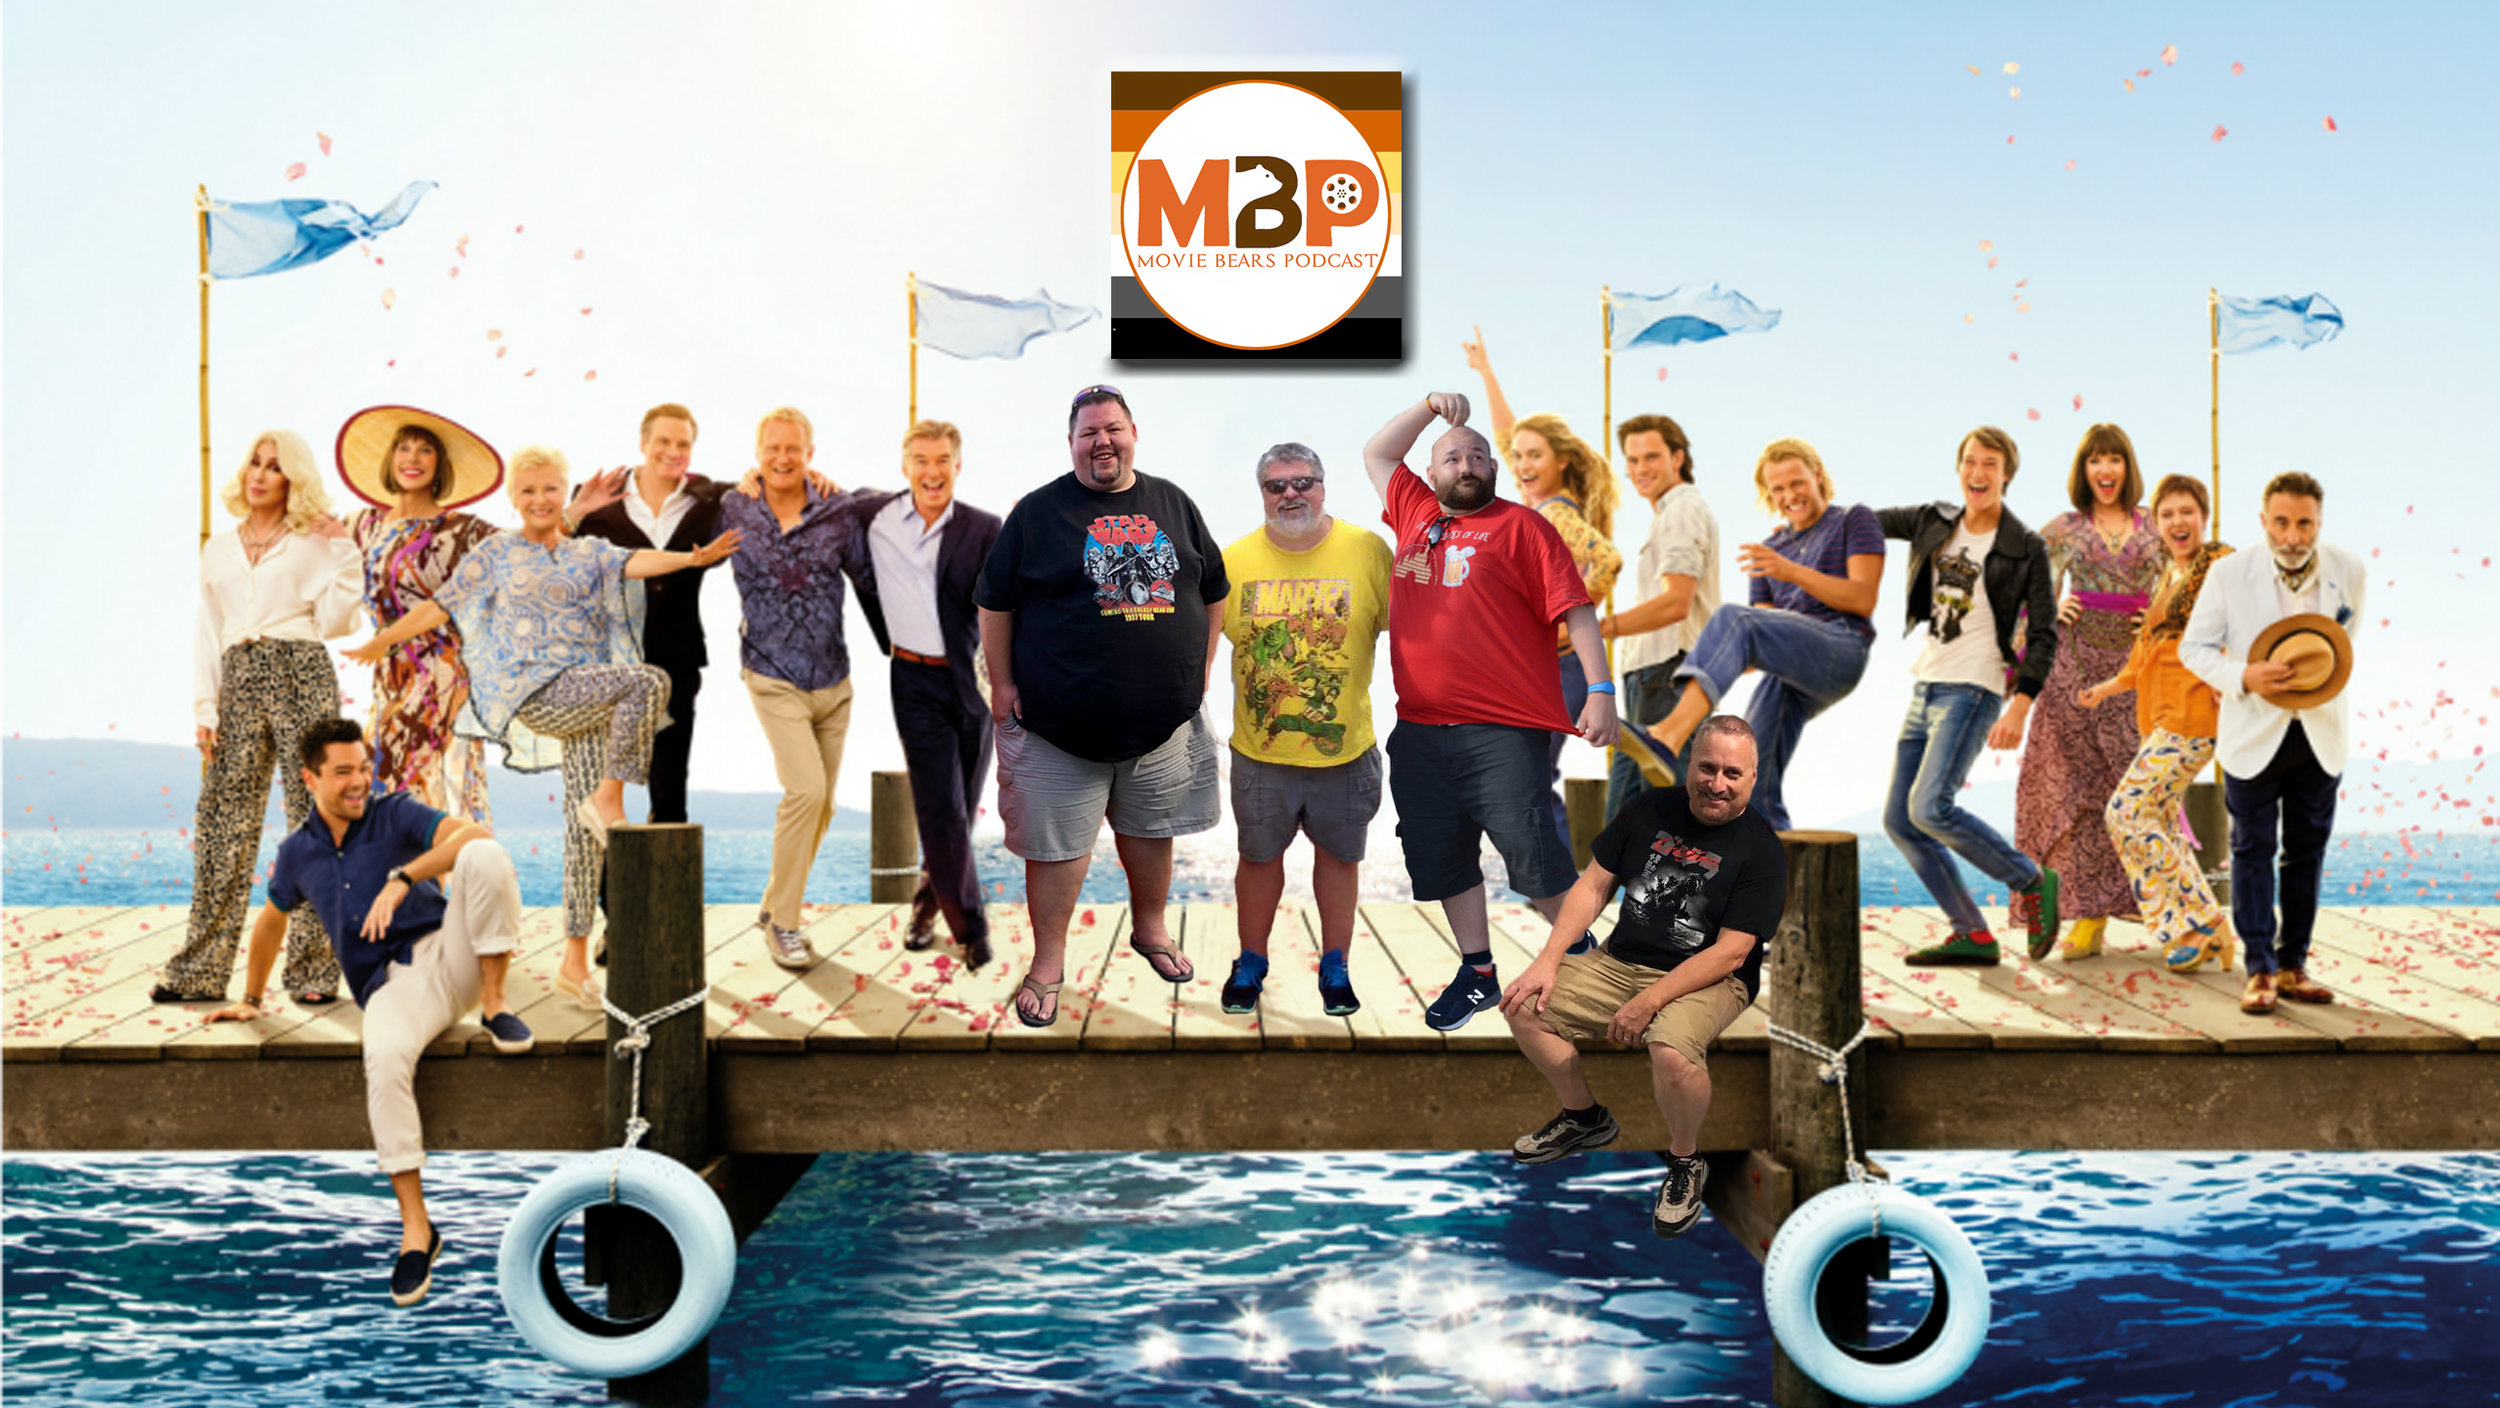 MBP e289 - 'Mamma Mia! Here We Go Again' and San Diego Comic-Con Trailers (7/24/18)    On this episode of the Movie Bears Podcast, we're a bunch of dancing queens, listening to the tunes of ABBA as adapted for 'Mamma Mia! Here We Go Again,' the sequel to the hit jukebox musical. Join us and special guest Bill Zanowitz of the Comic Book Bears Podcast as we review the film, as well as a trio of buzz-worthy trailers from San Diego Comic-Con. Click through to listen!